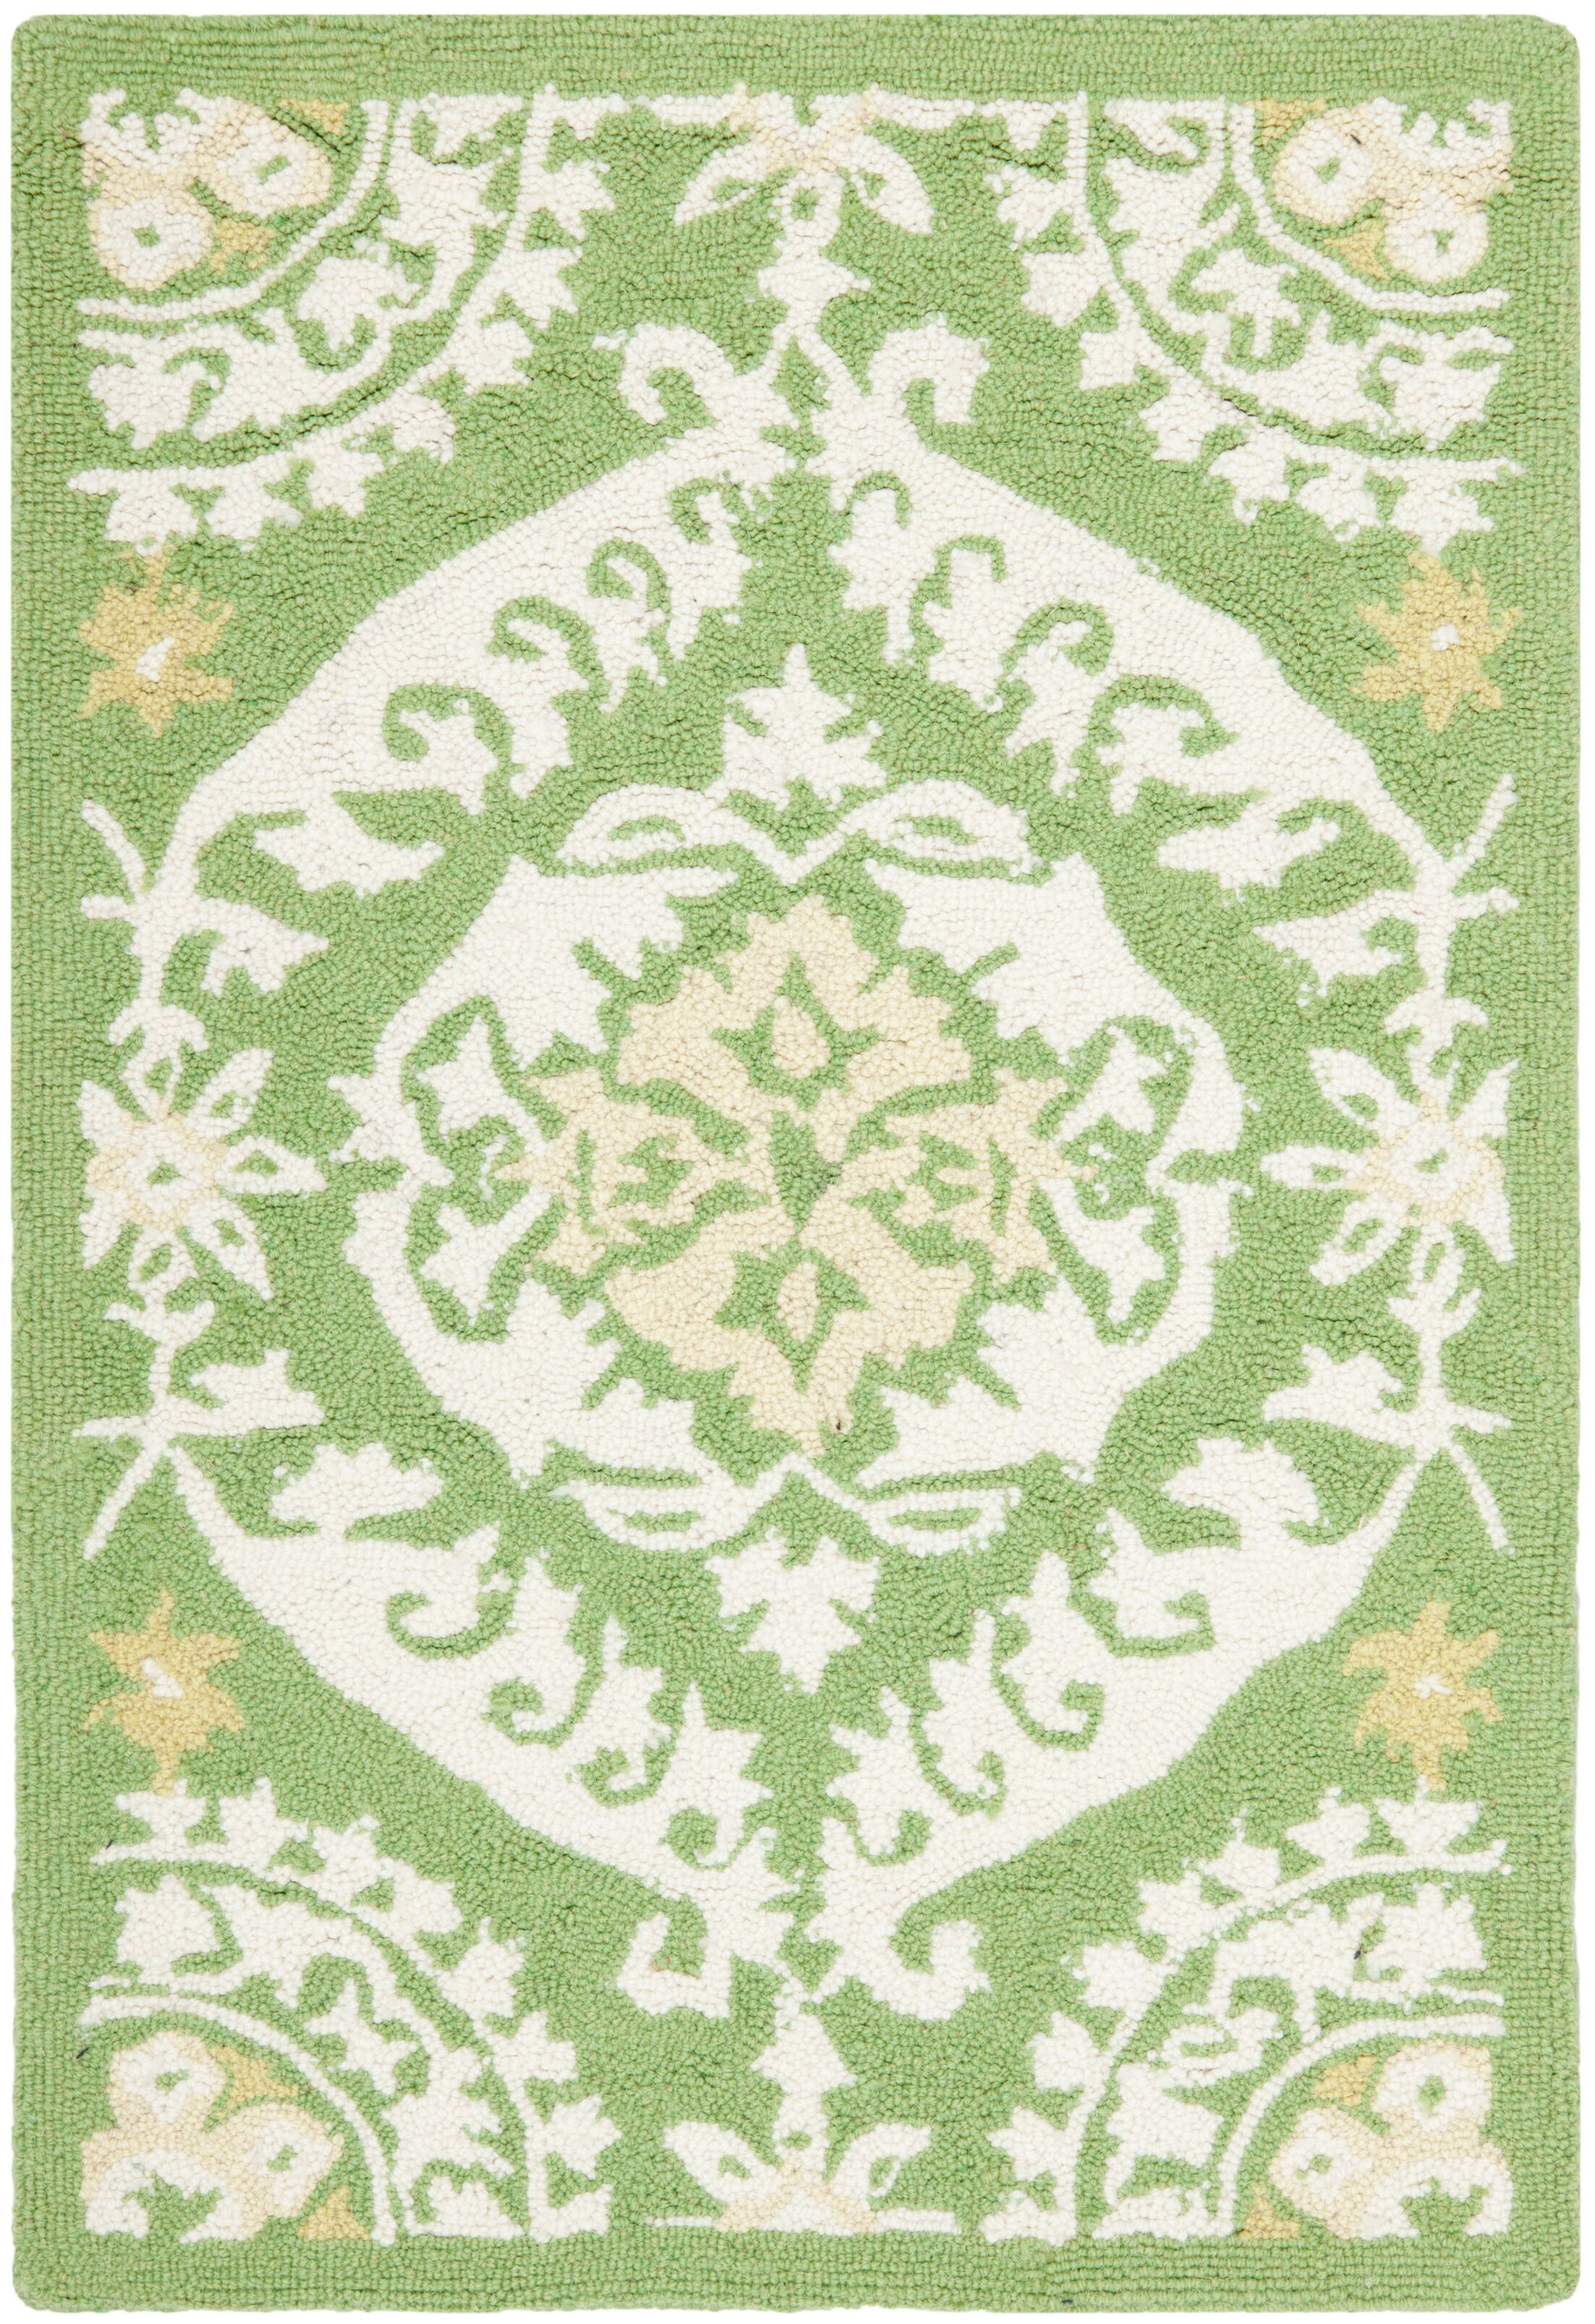 Nesbitt Hand Hooked Green/Beige Area Rug Rug Size: Rectangle 8'9